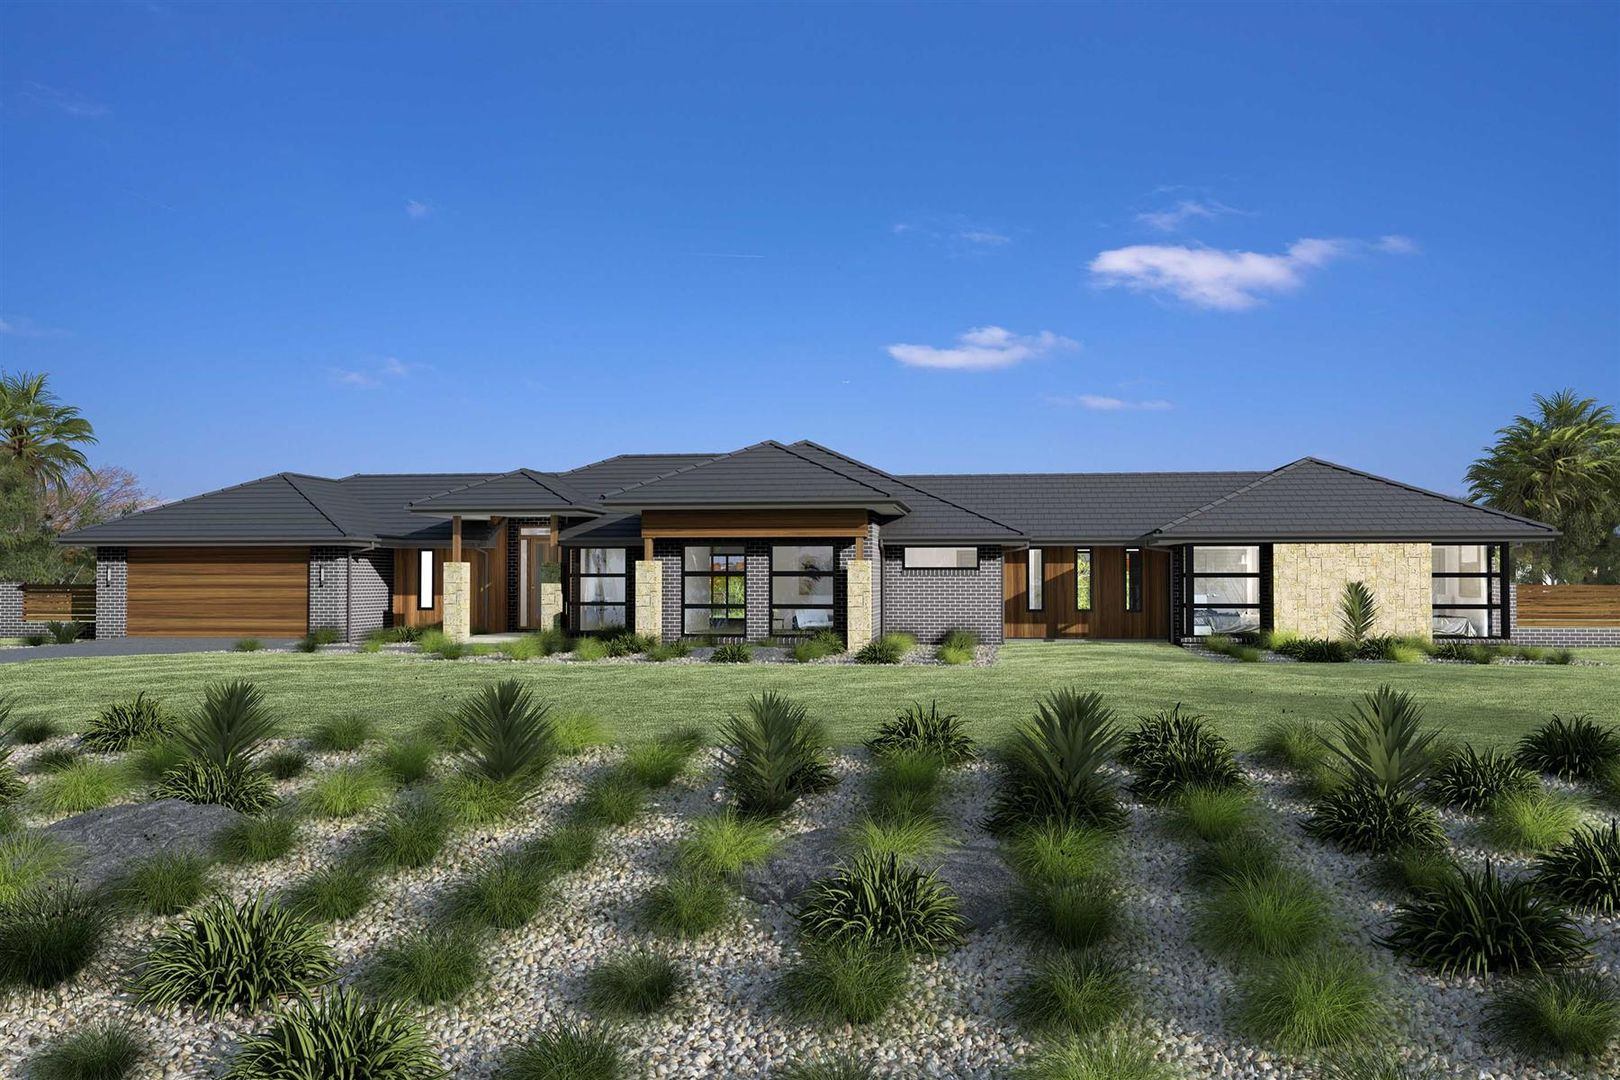 Lot 15, Address: Available upon request, Burpengary East QLD 4505, Image 0